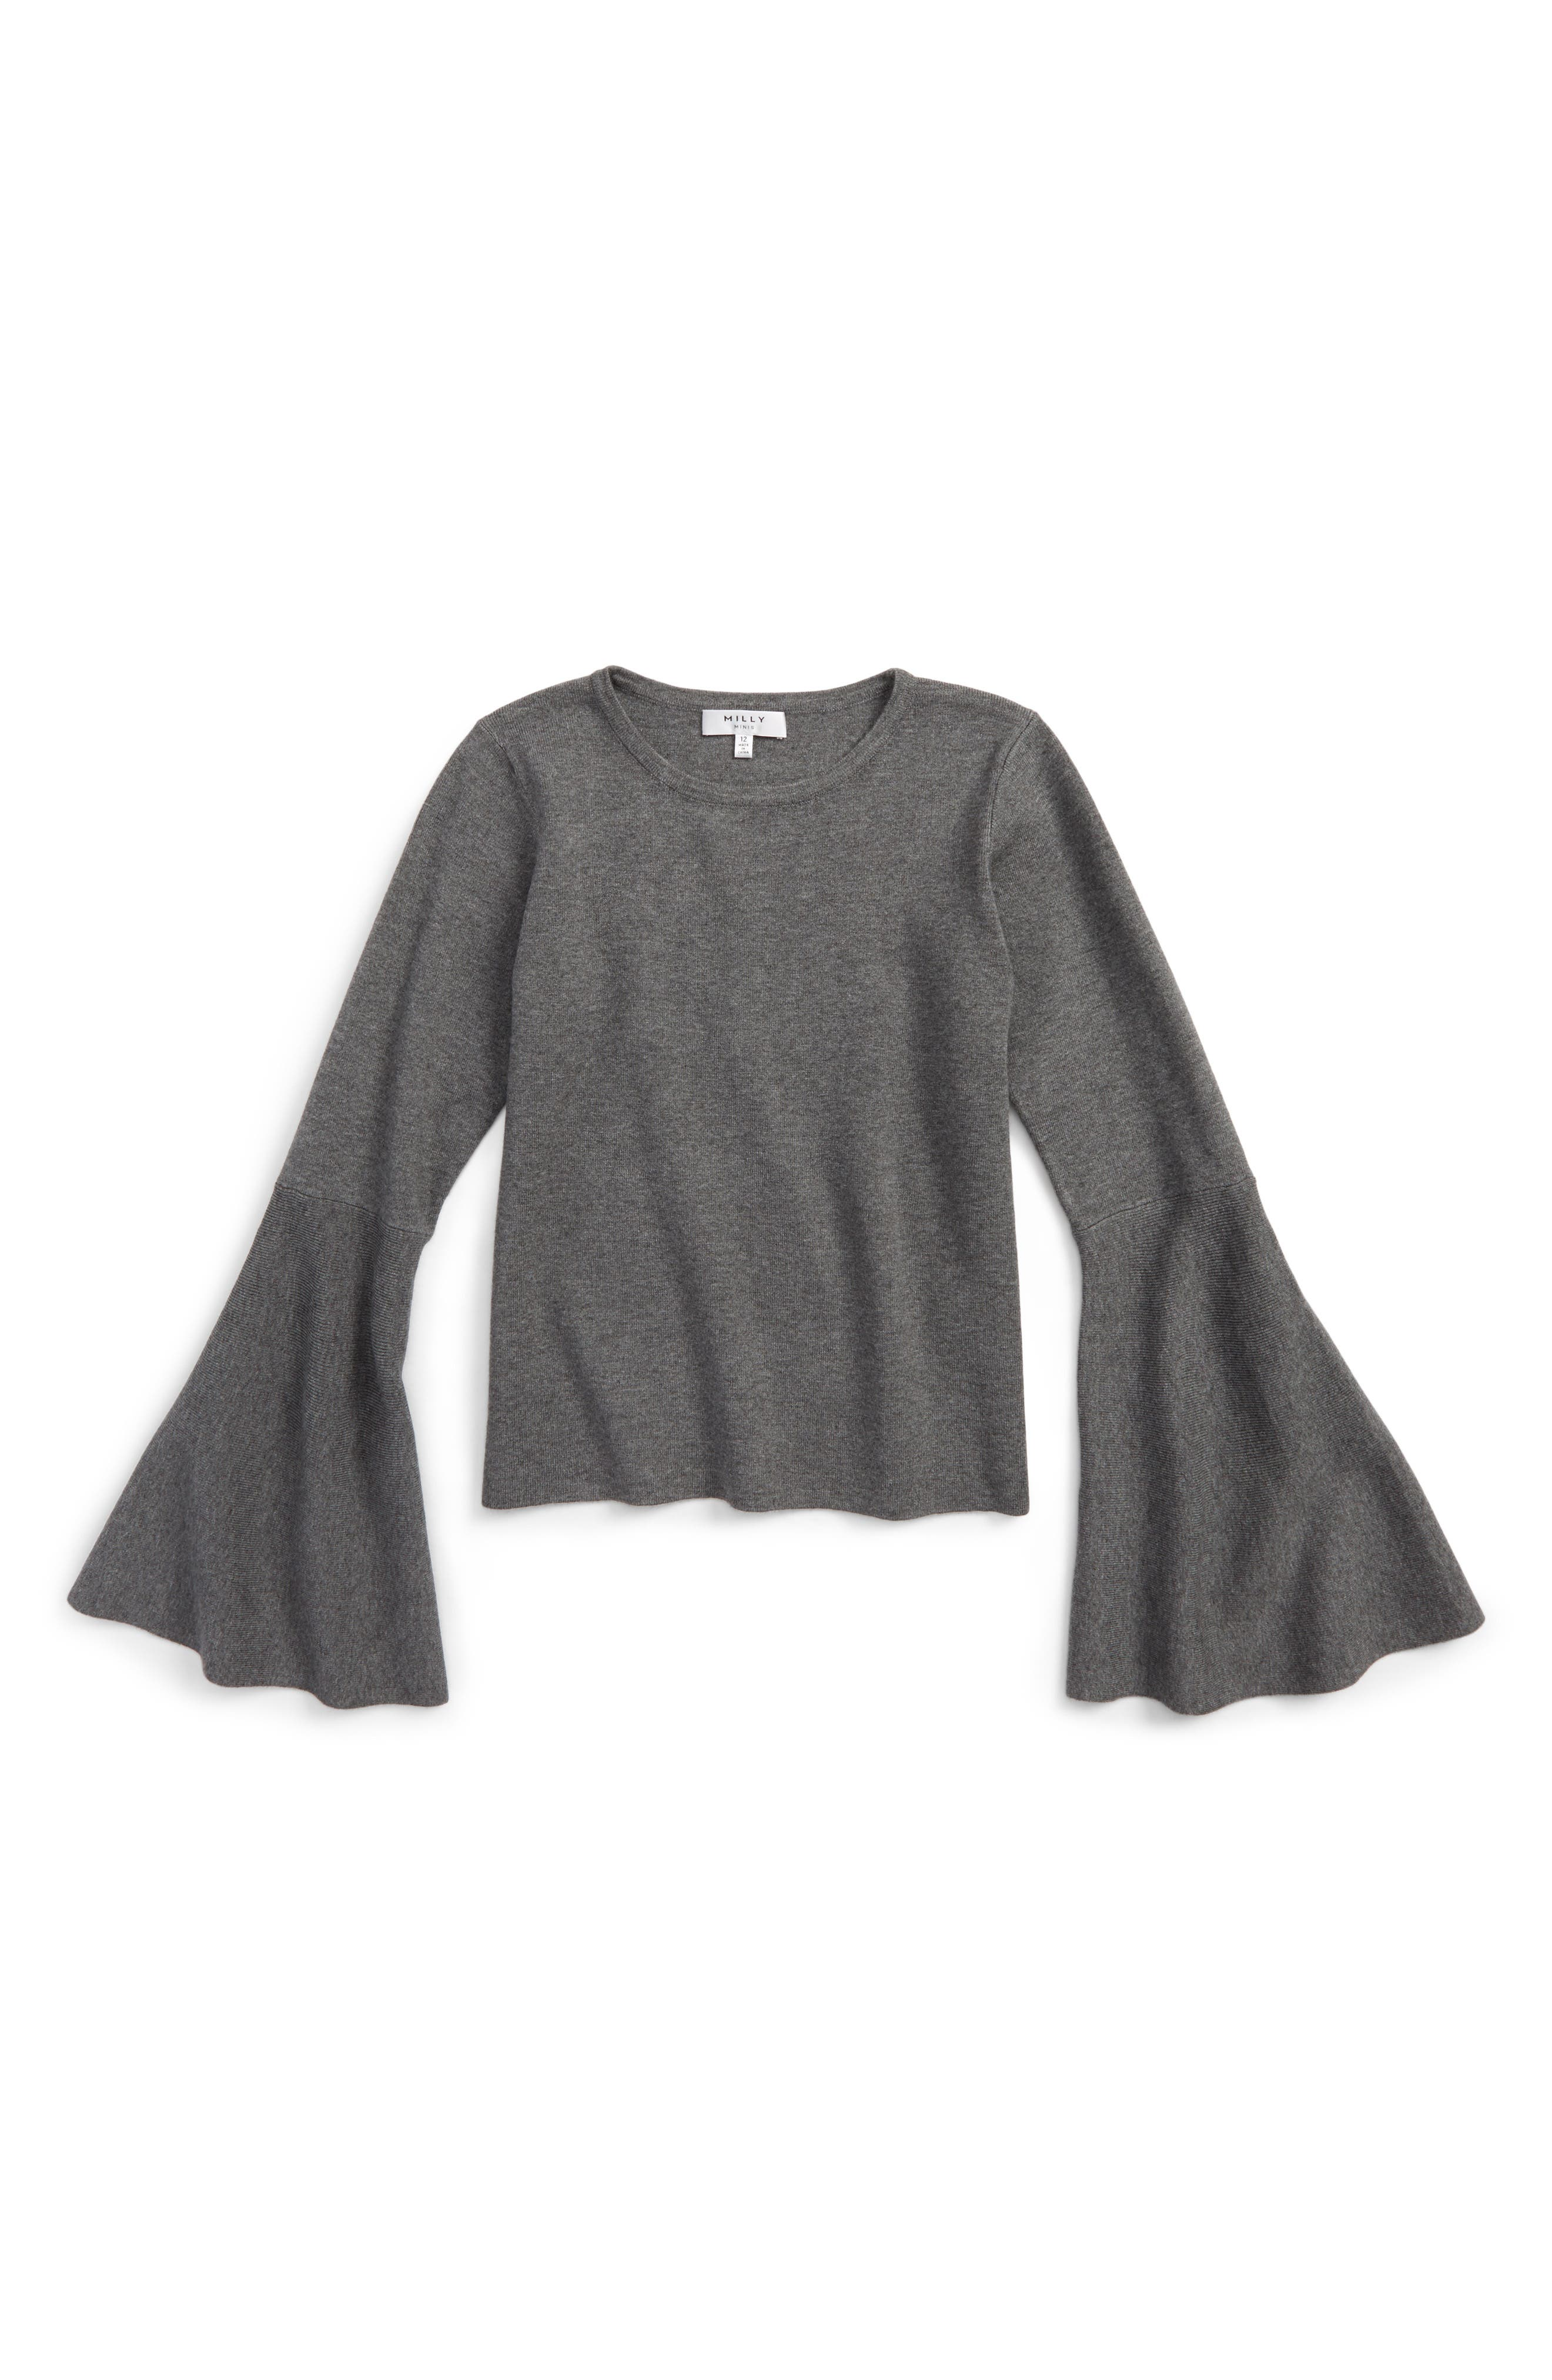 Milly Minis Bell Sleeve Top (Toddler Girls, Little Girls & Big Girls)